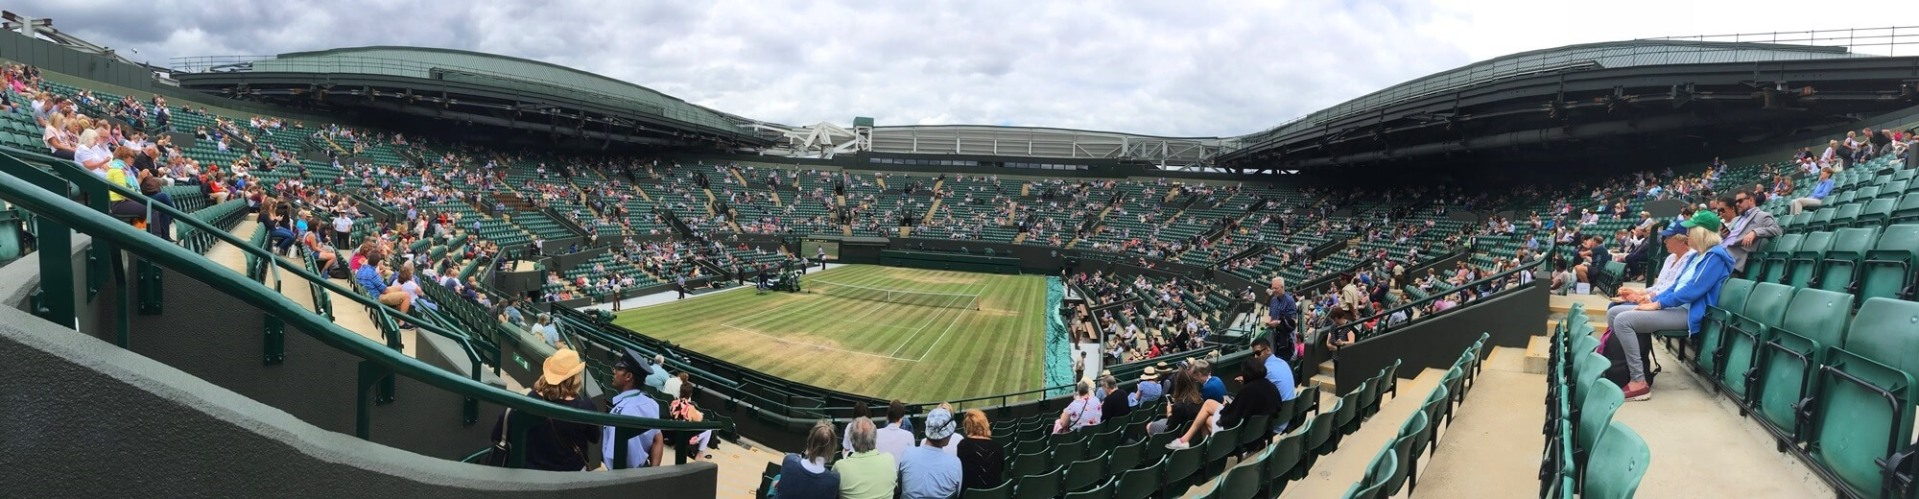 court 1 at Wimbledon day